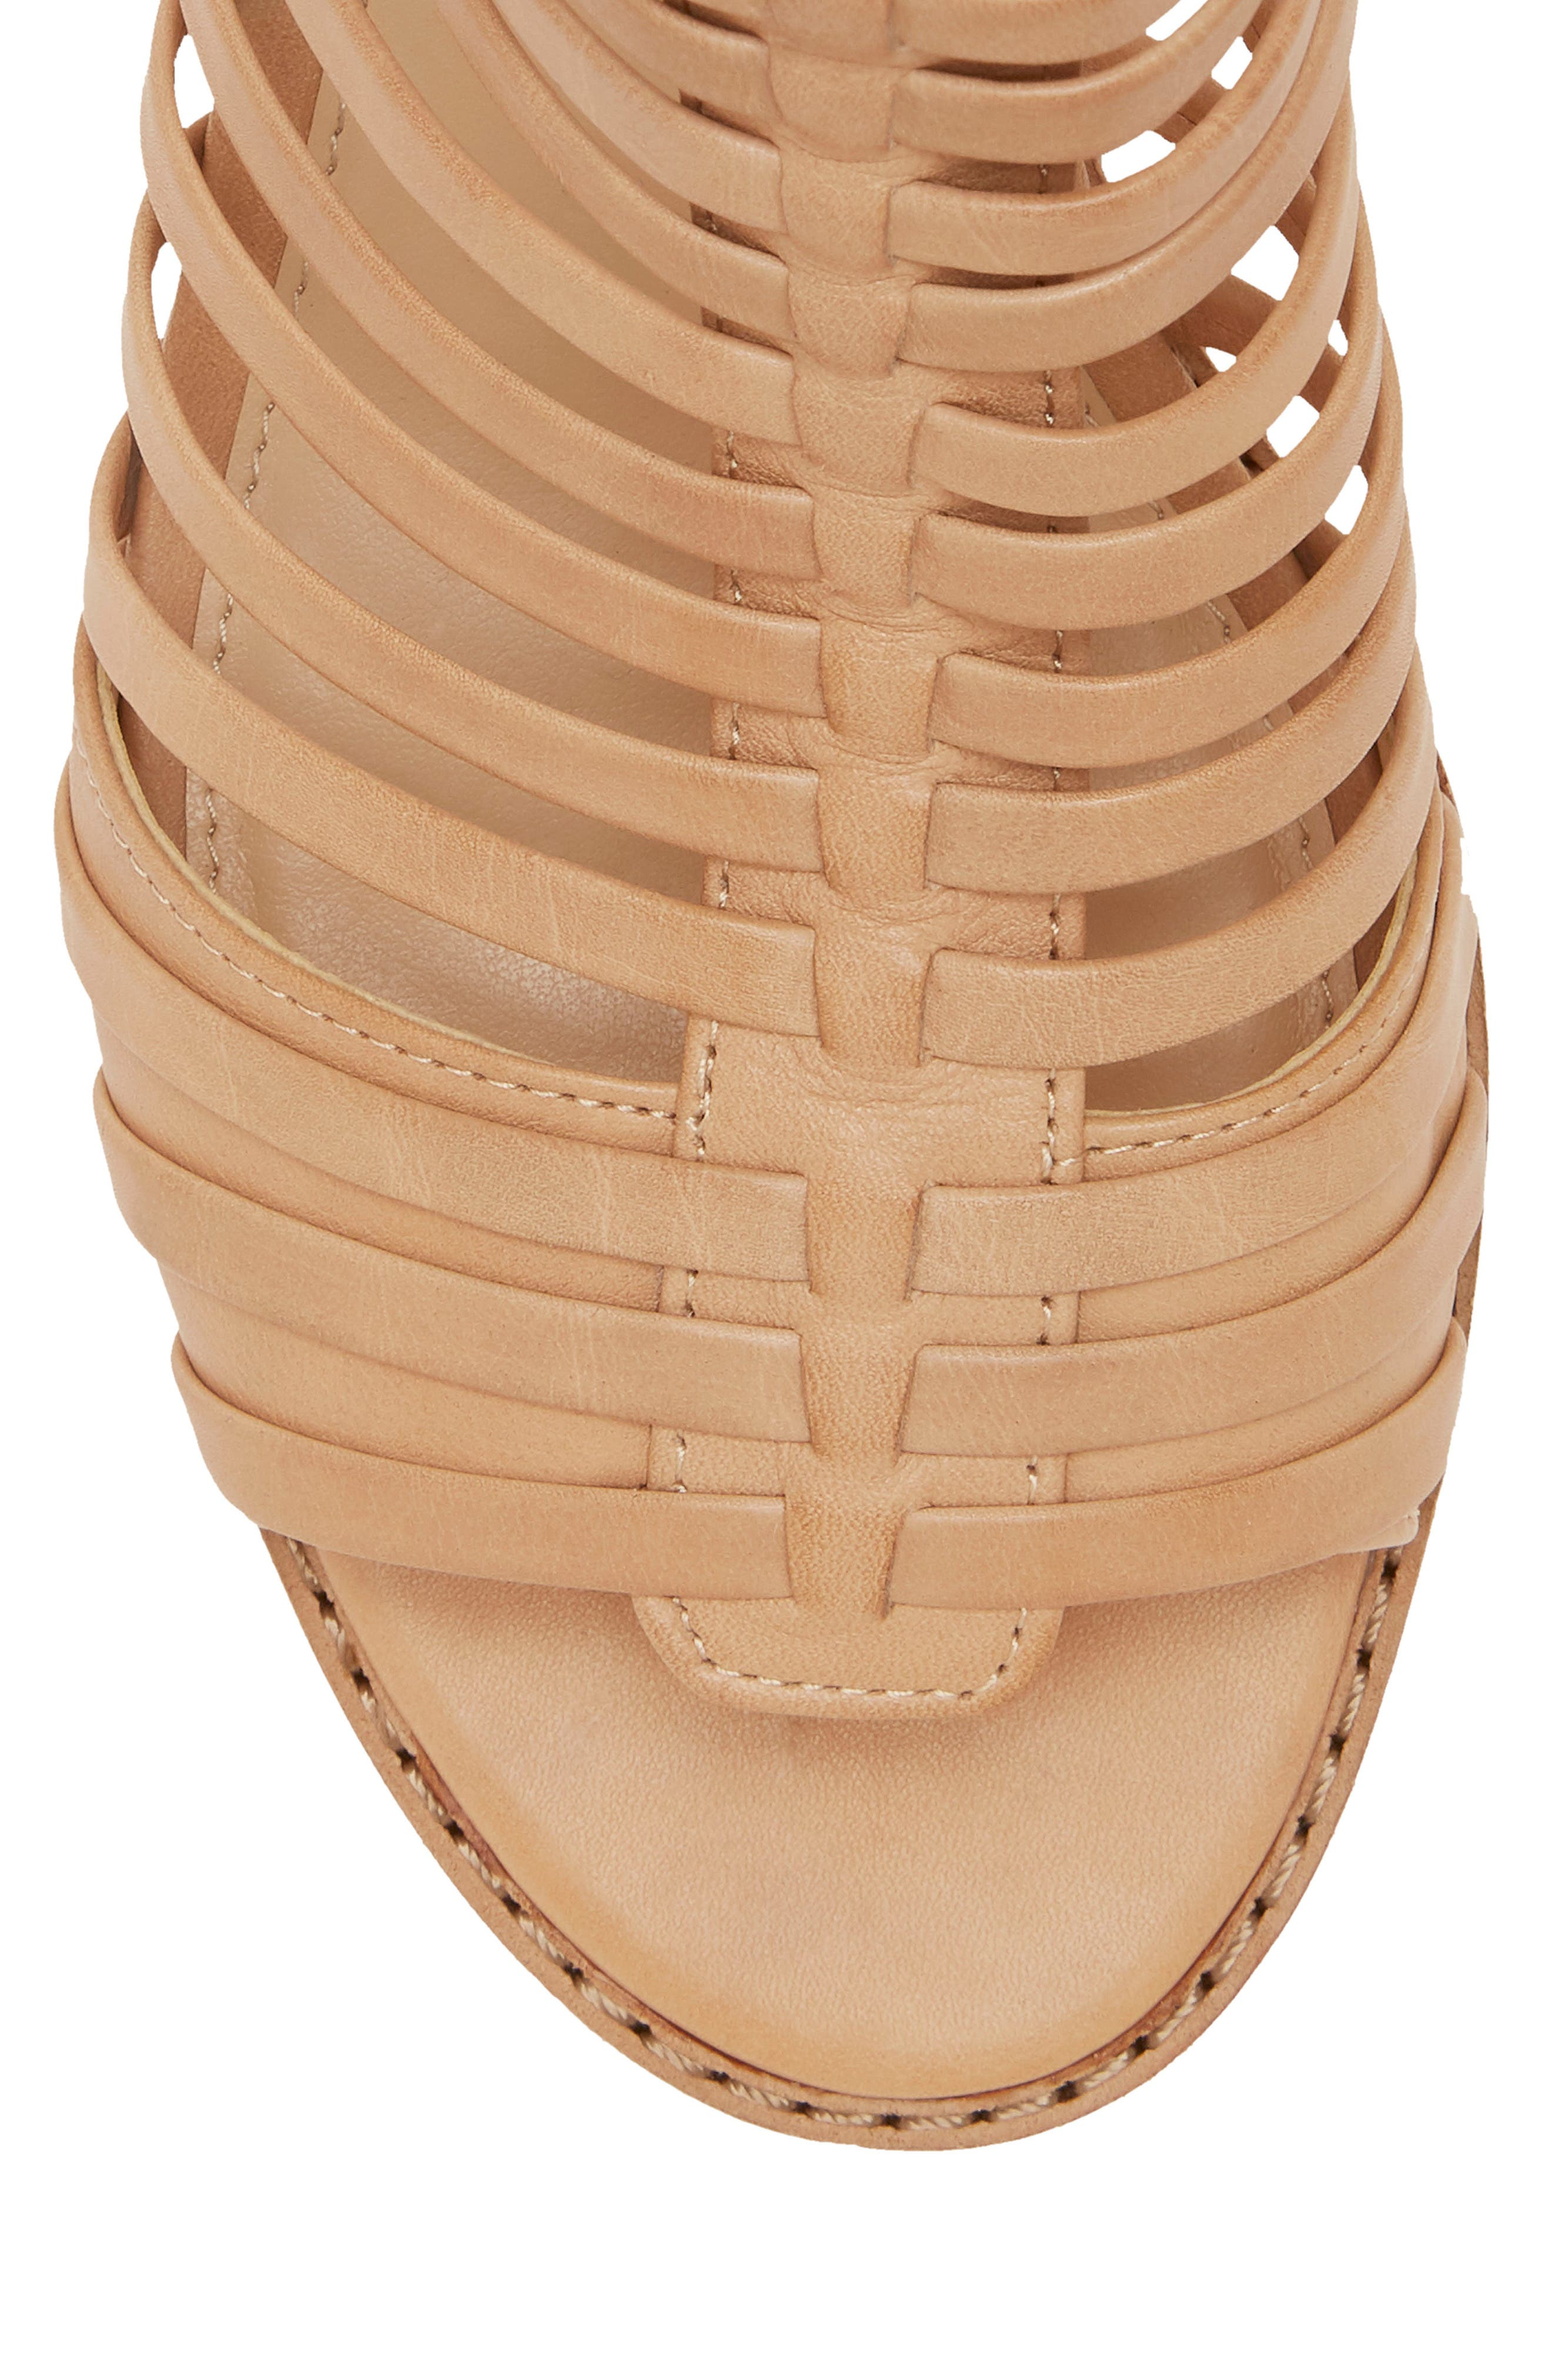 VINCE CAMUTO, Revey Wedge Sandal, Alternate thumbnail 8, color, NATURAL LEATHER